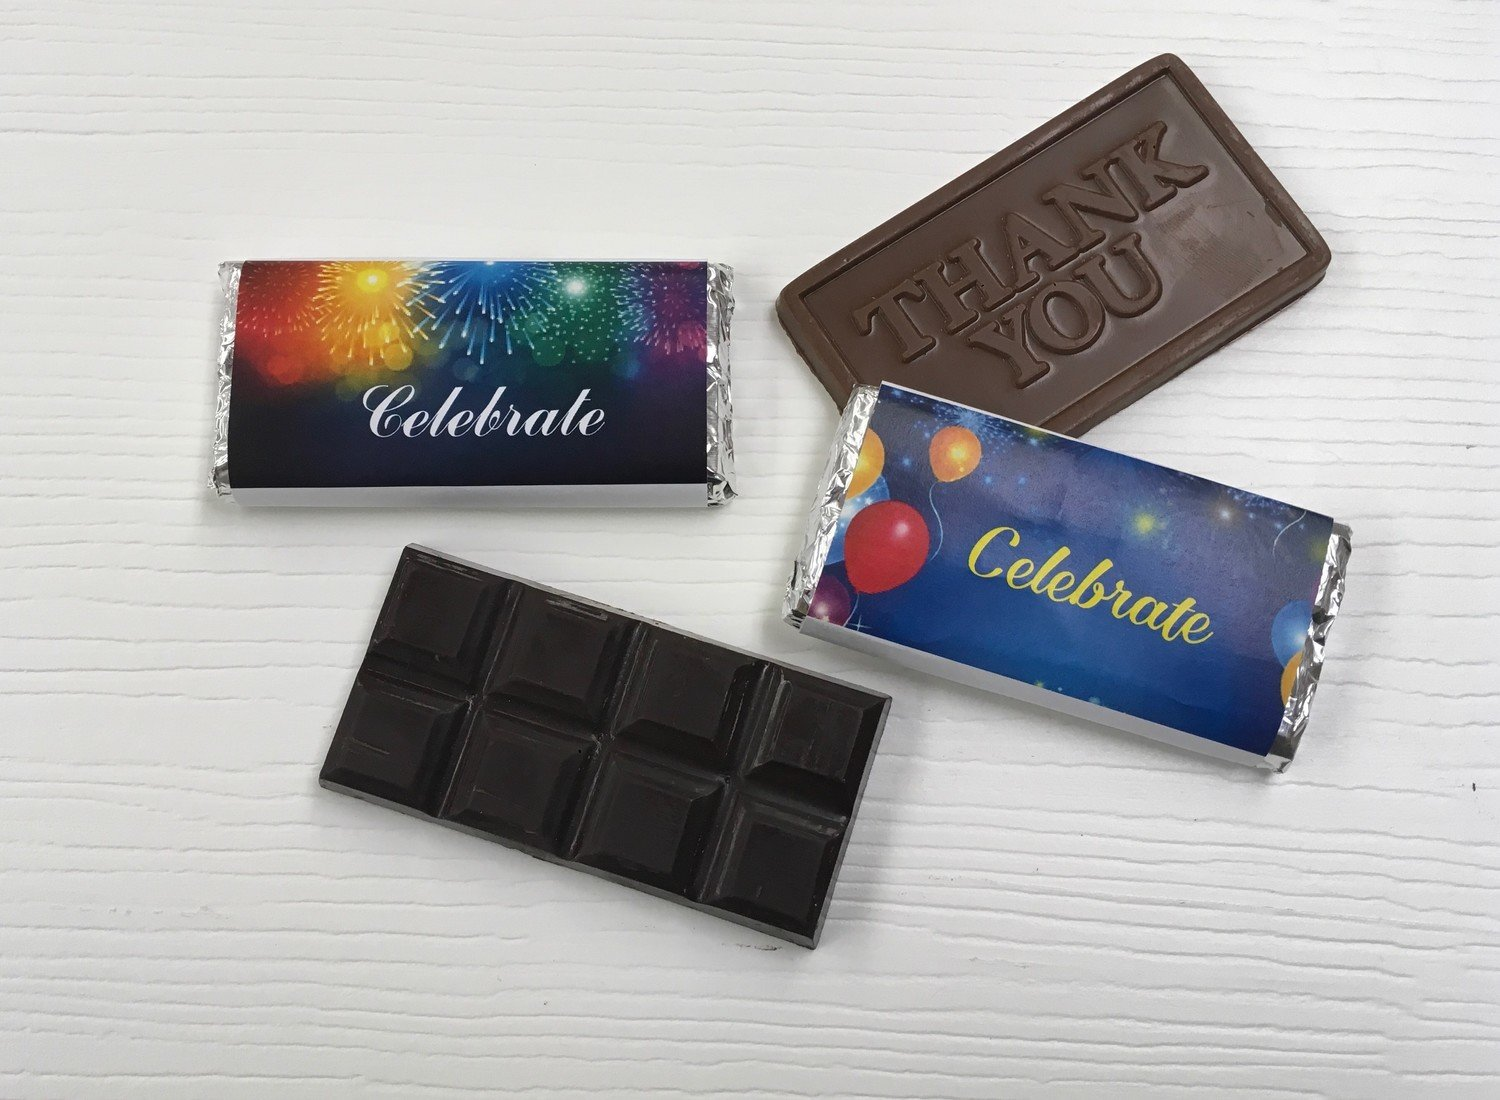 Celebration Chocolate Birthday Bars (Chocolate included).  Choose from Chocolate Bar or Thank you Bar. Personalize your wrapper for no extra charge.  (picture is $10.00 extra). Peanut & Gluten Free.